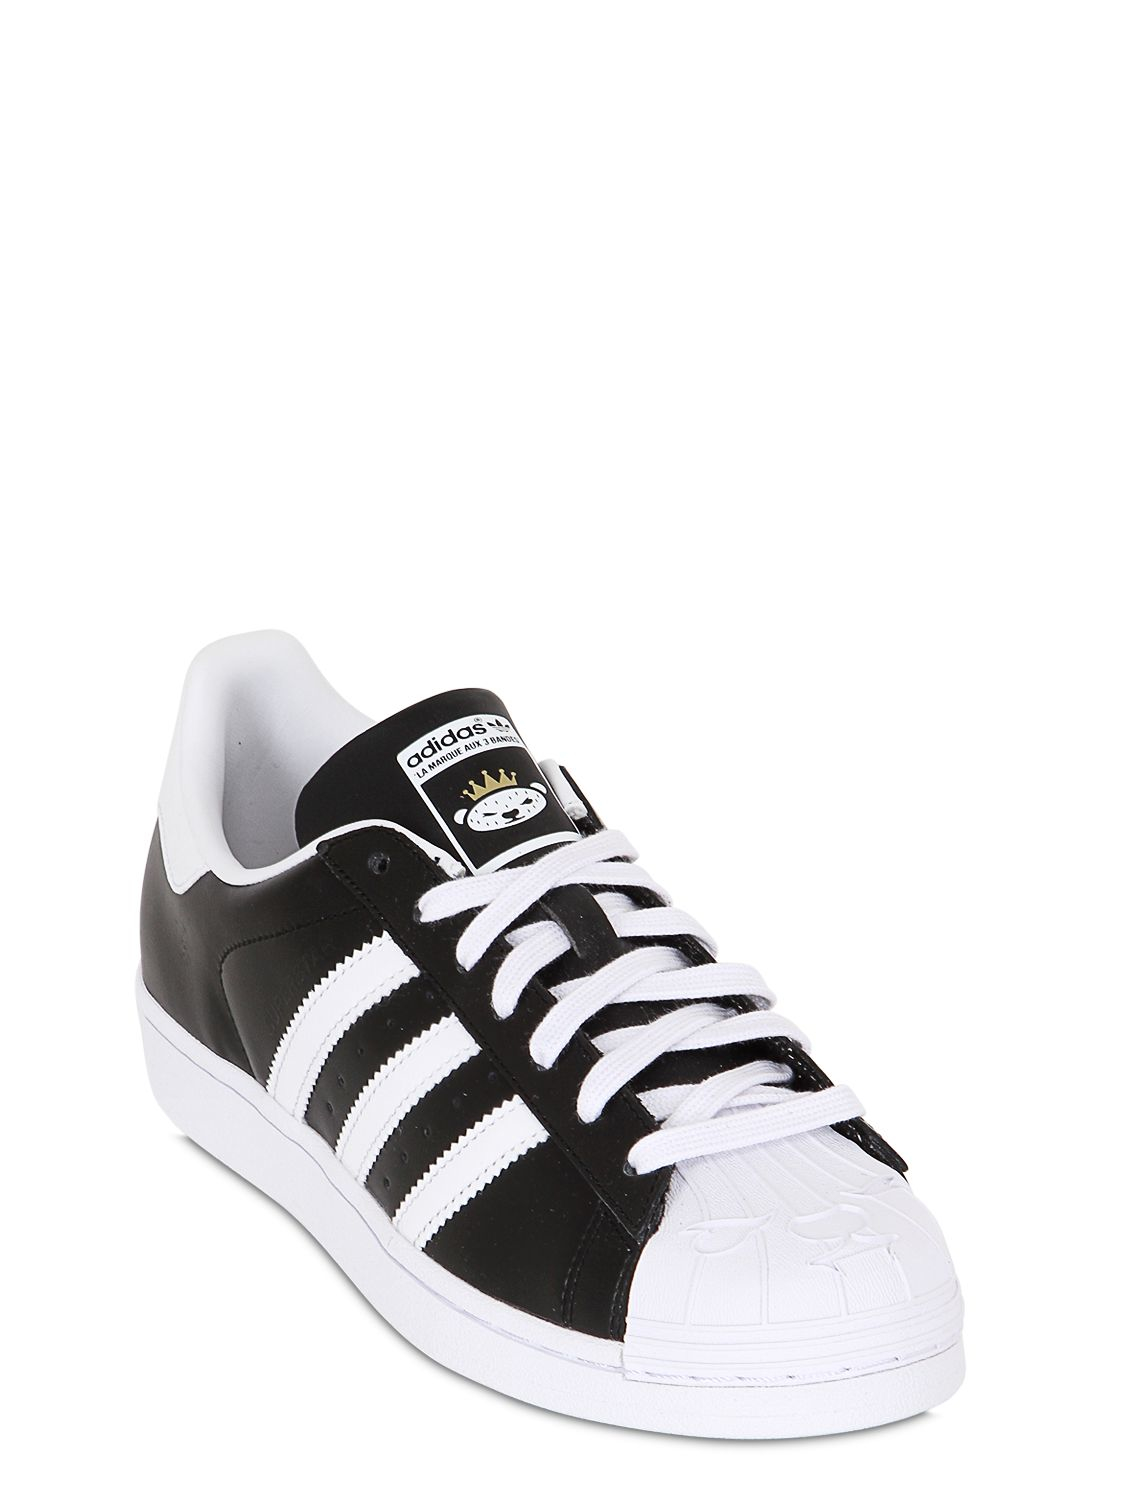 Adidas Superstar Black And White Leather ...